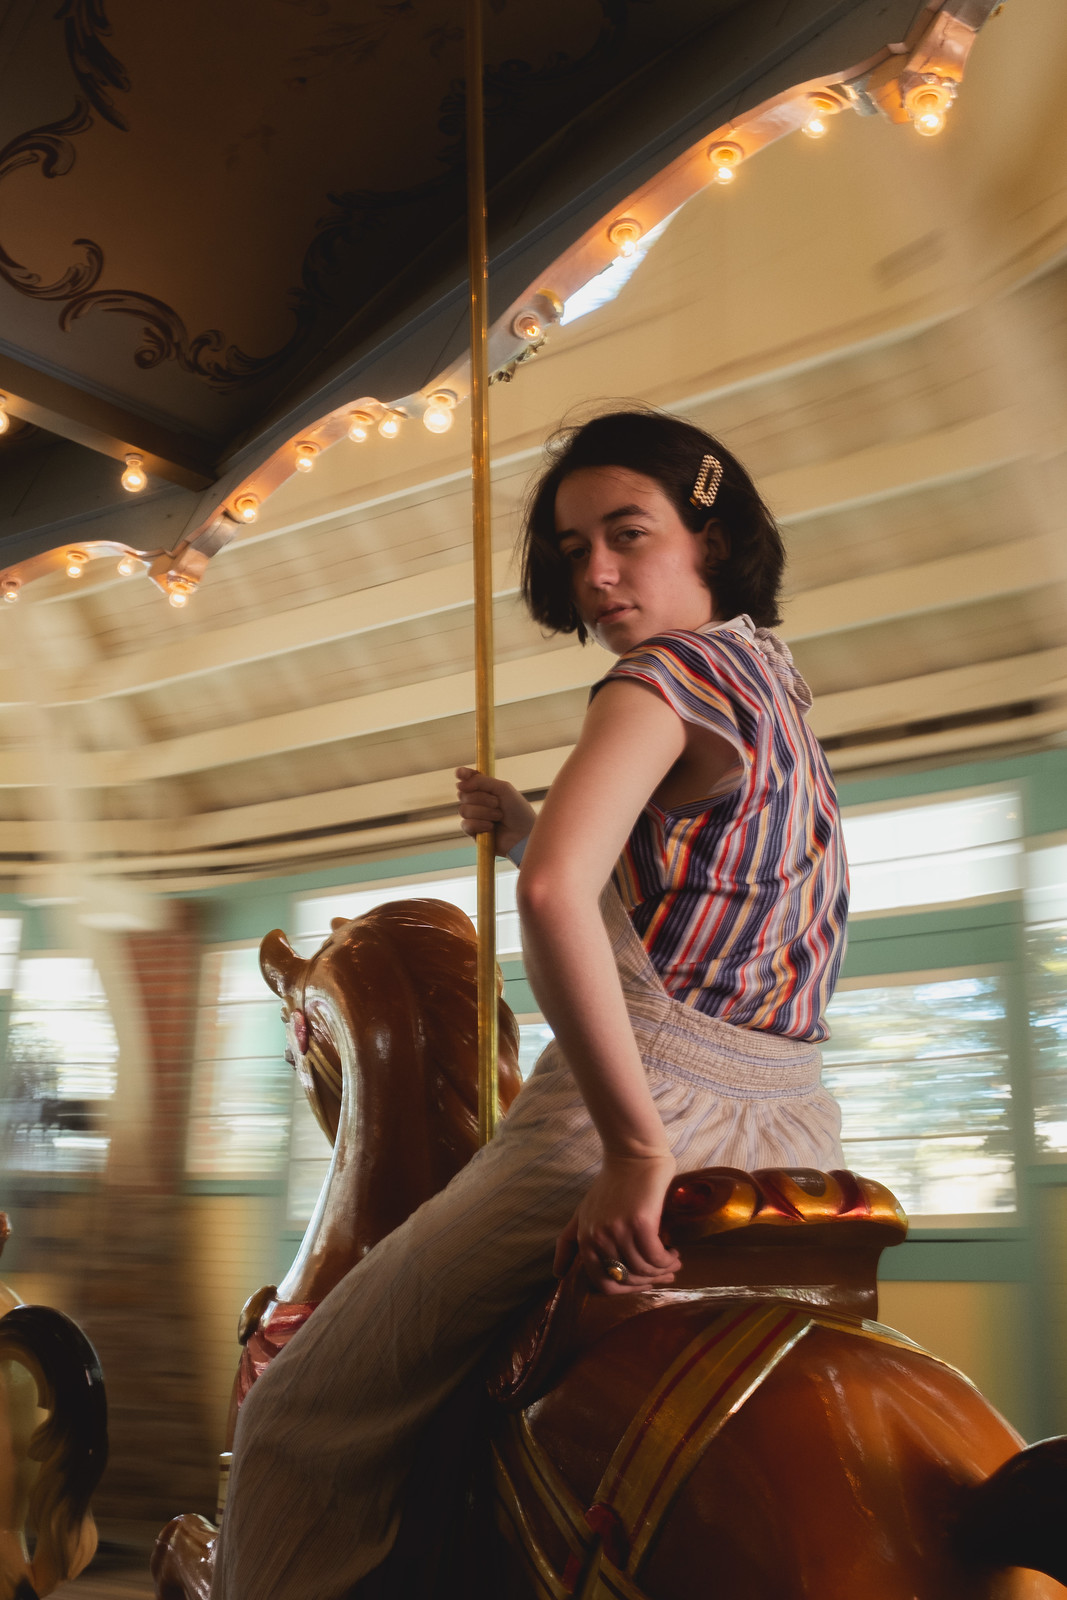 Zofie on the Carousel